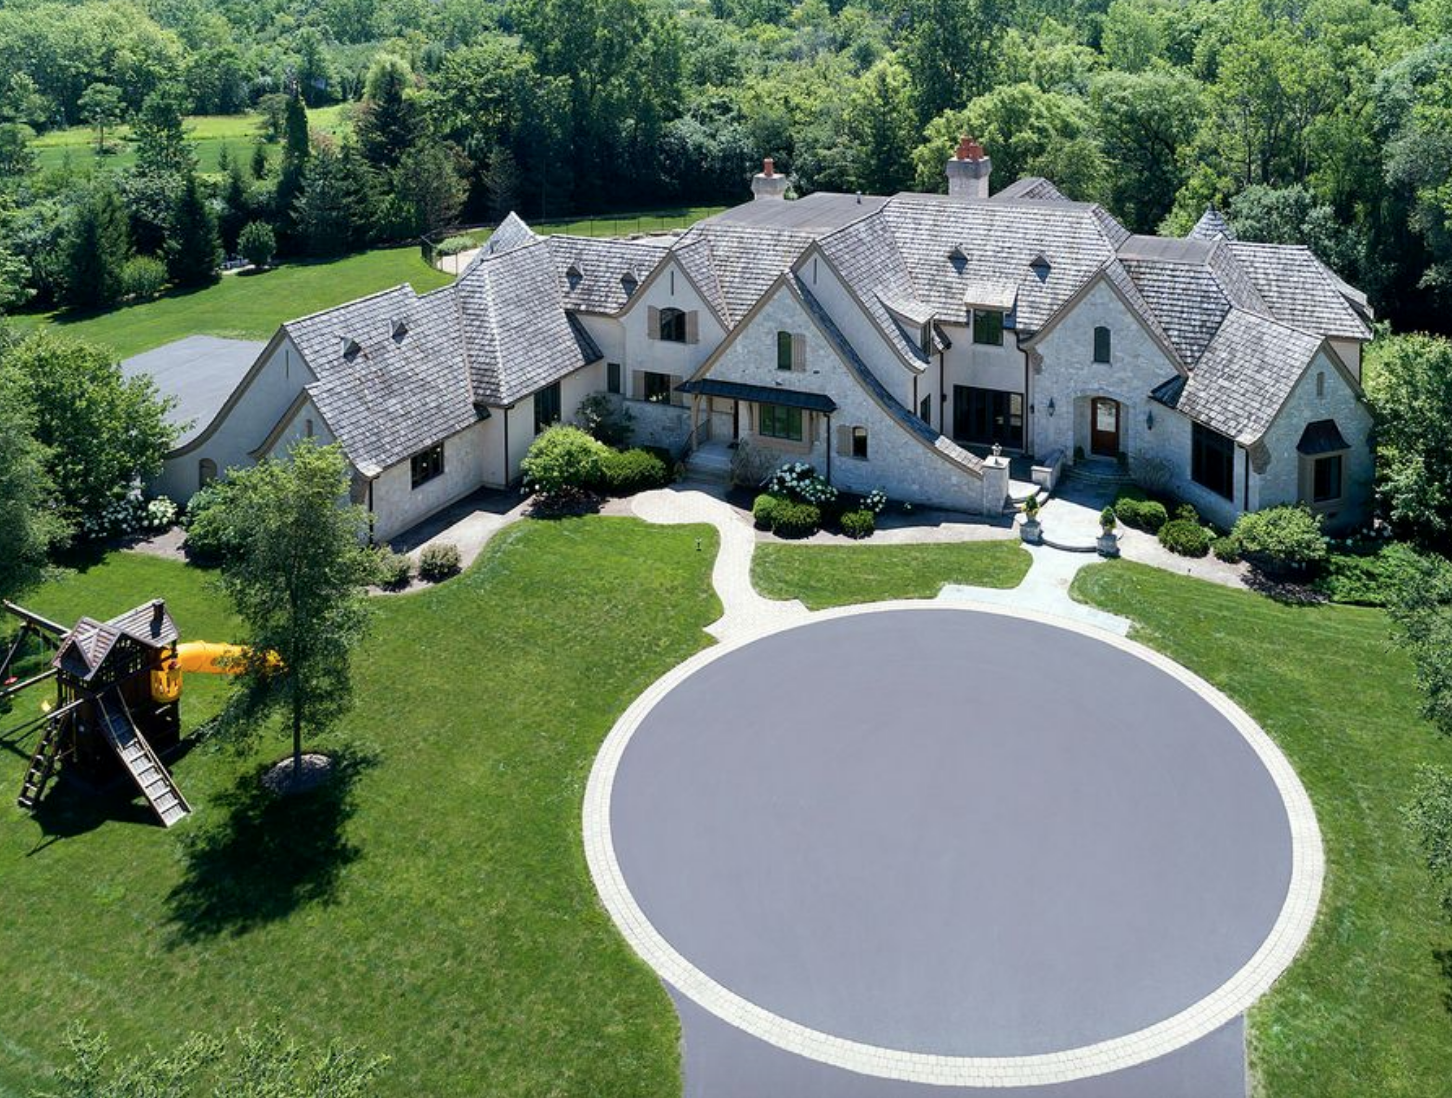 Former NBA Star Kirk Hinrich's Bannockburn estate sold for $2.75 million; he paid more than $5.3 million for it in 2007.